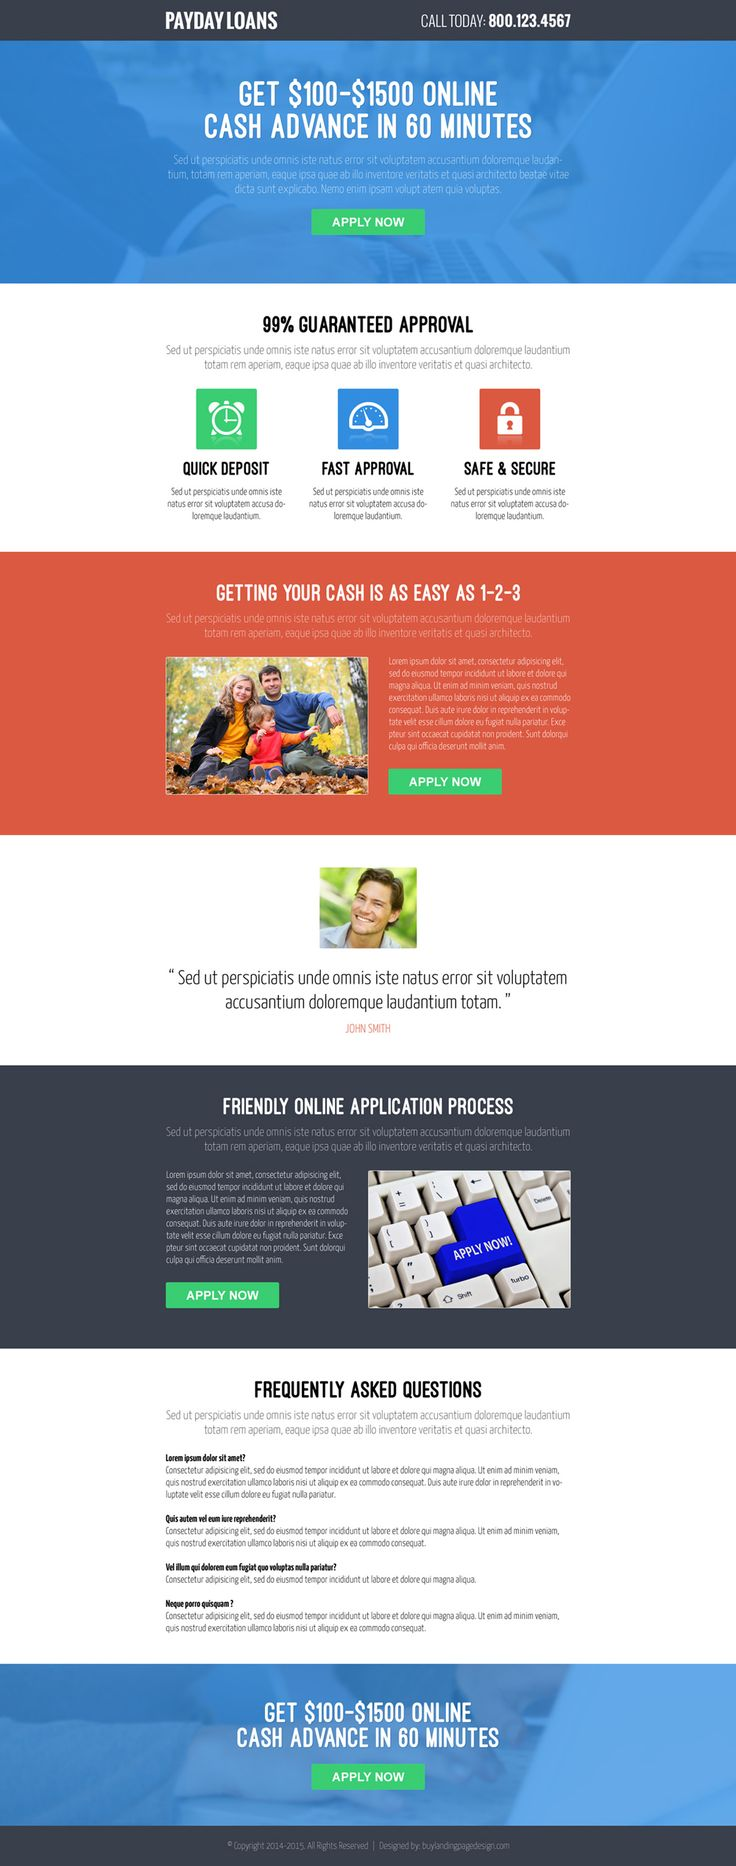 167 best payday loan landing page design images on pinterest best responsive landing page designs templates 2014 to capture leads increase conversion and boost your sales from pronofoot35fo Choice Image